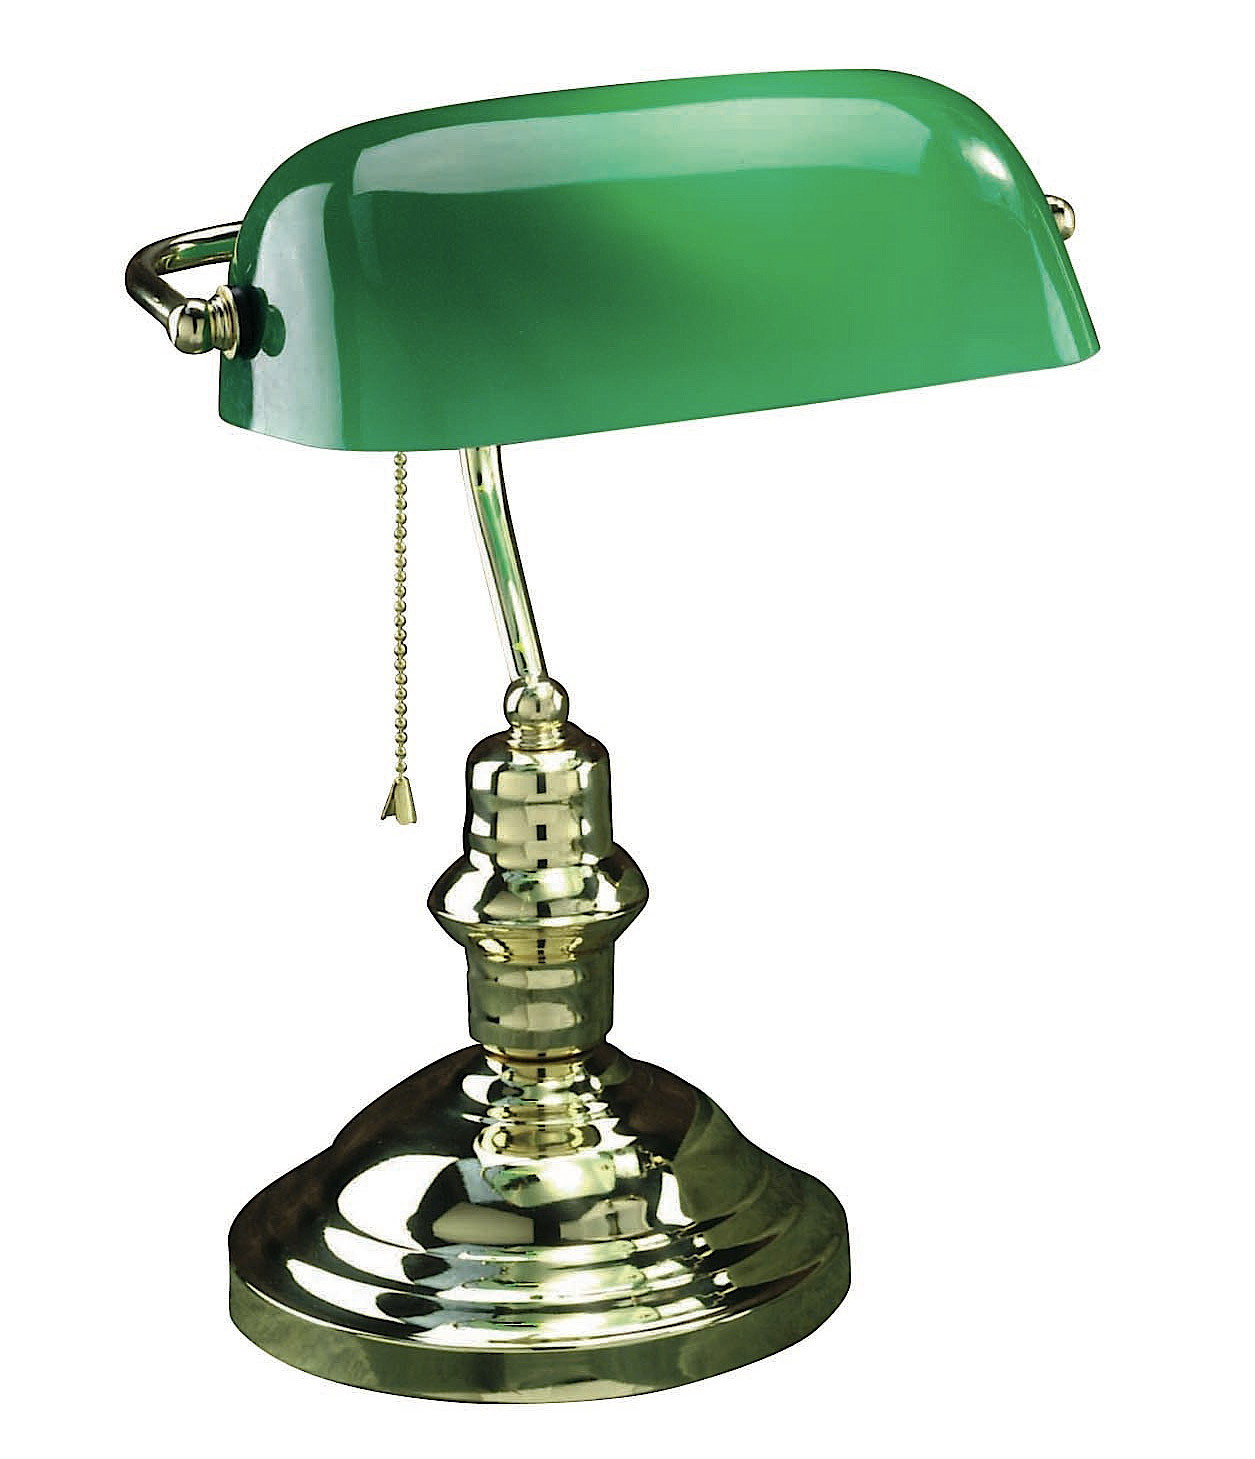 Best ideas about Bankers Desk Lamp . Save or Pin Lite Source LS 224AB Banker s Desk Lamp Now.